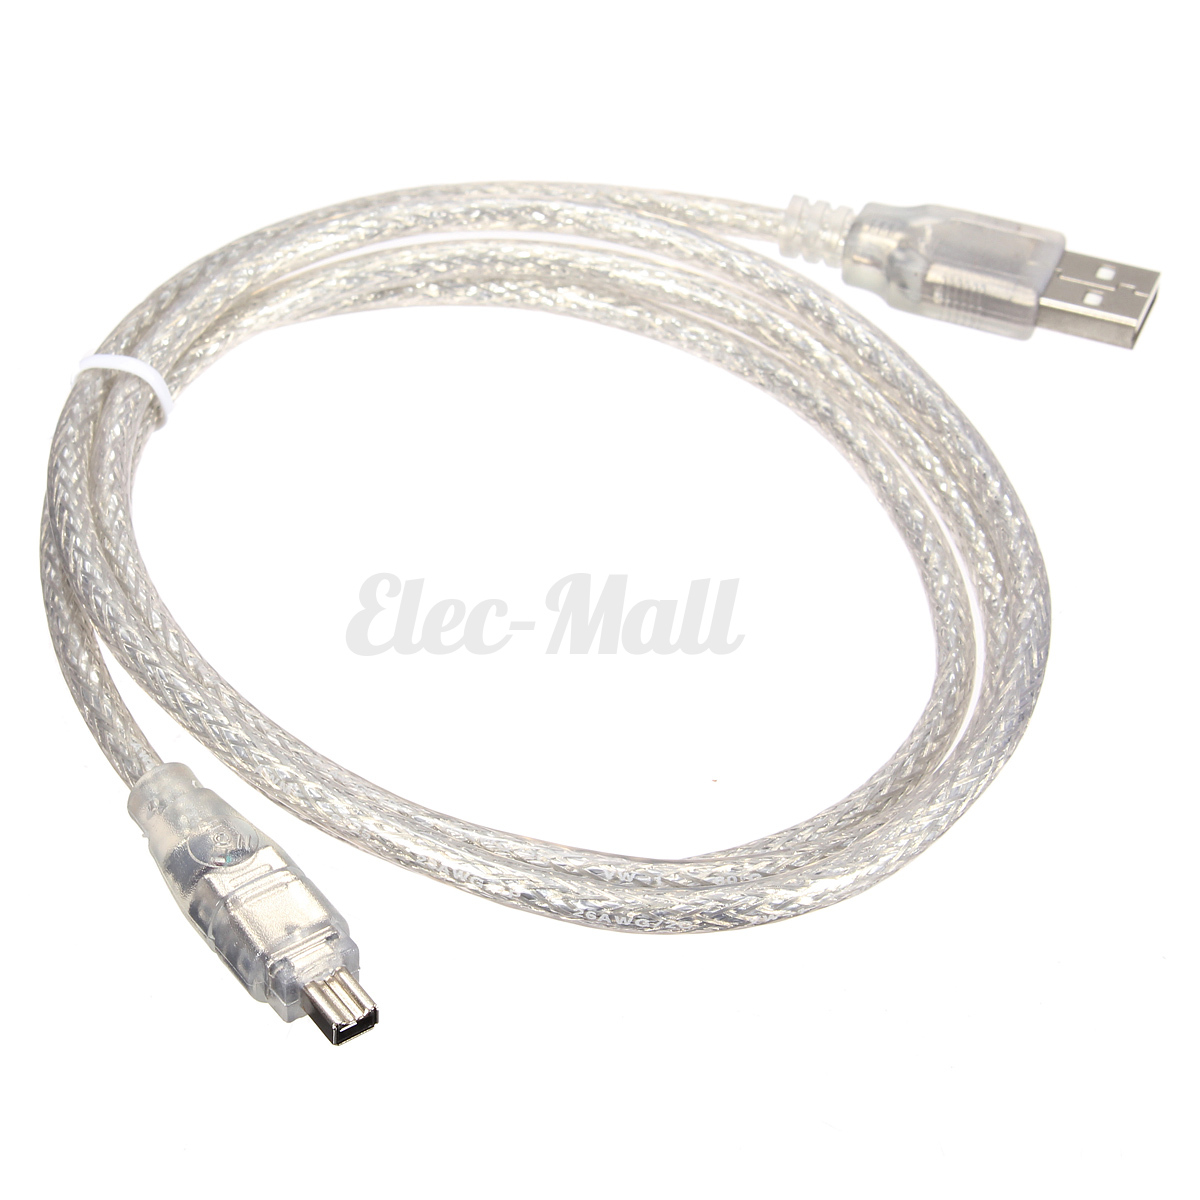 4ft USB 2.0 Male To Firewire iEEE 1394 4 Pin Male iLink Adapter Cable Cord HF